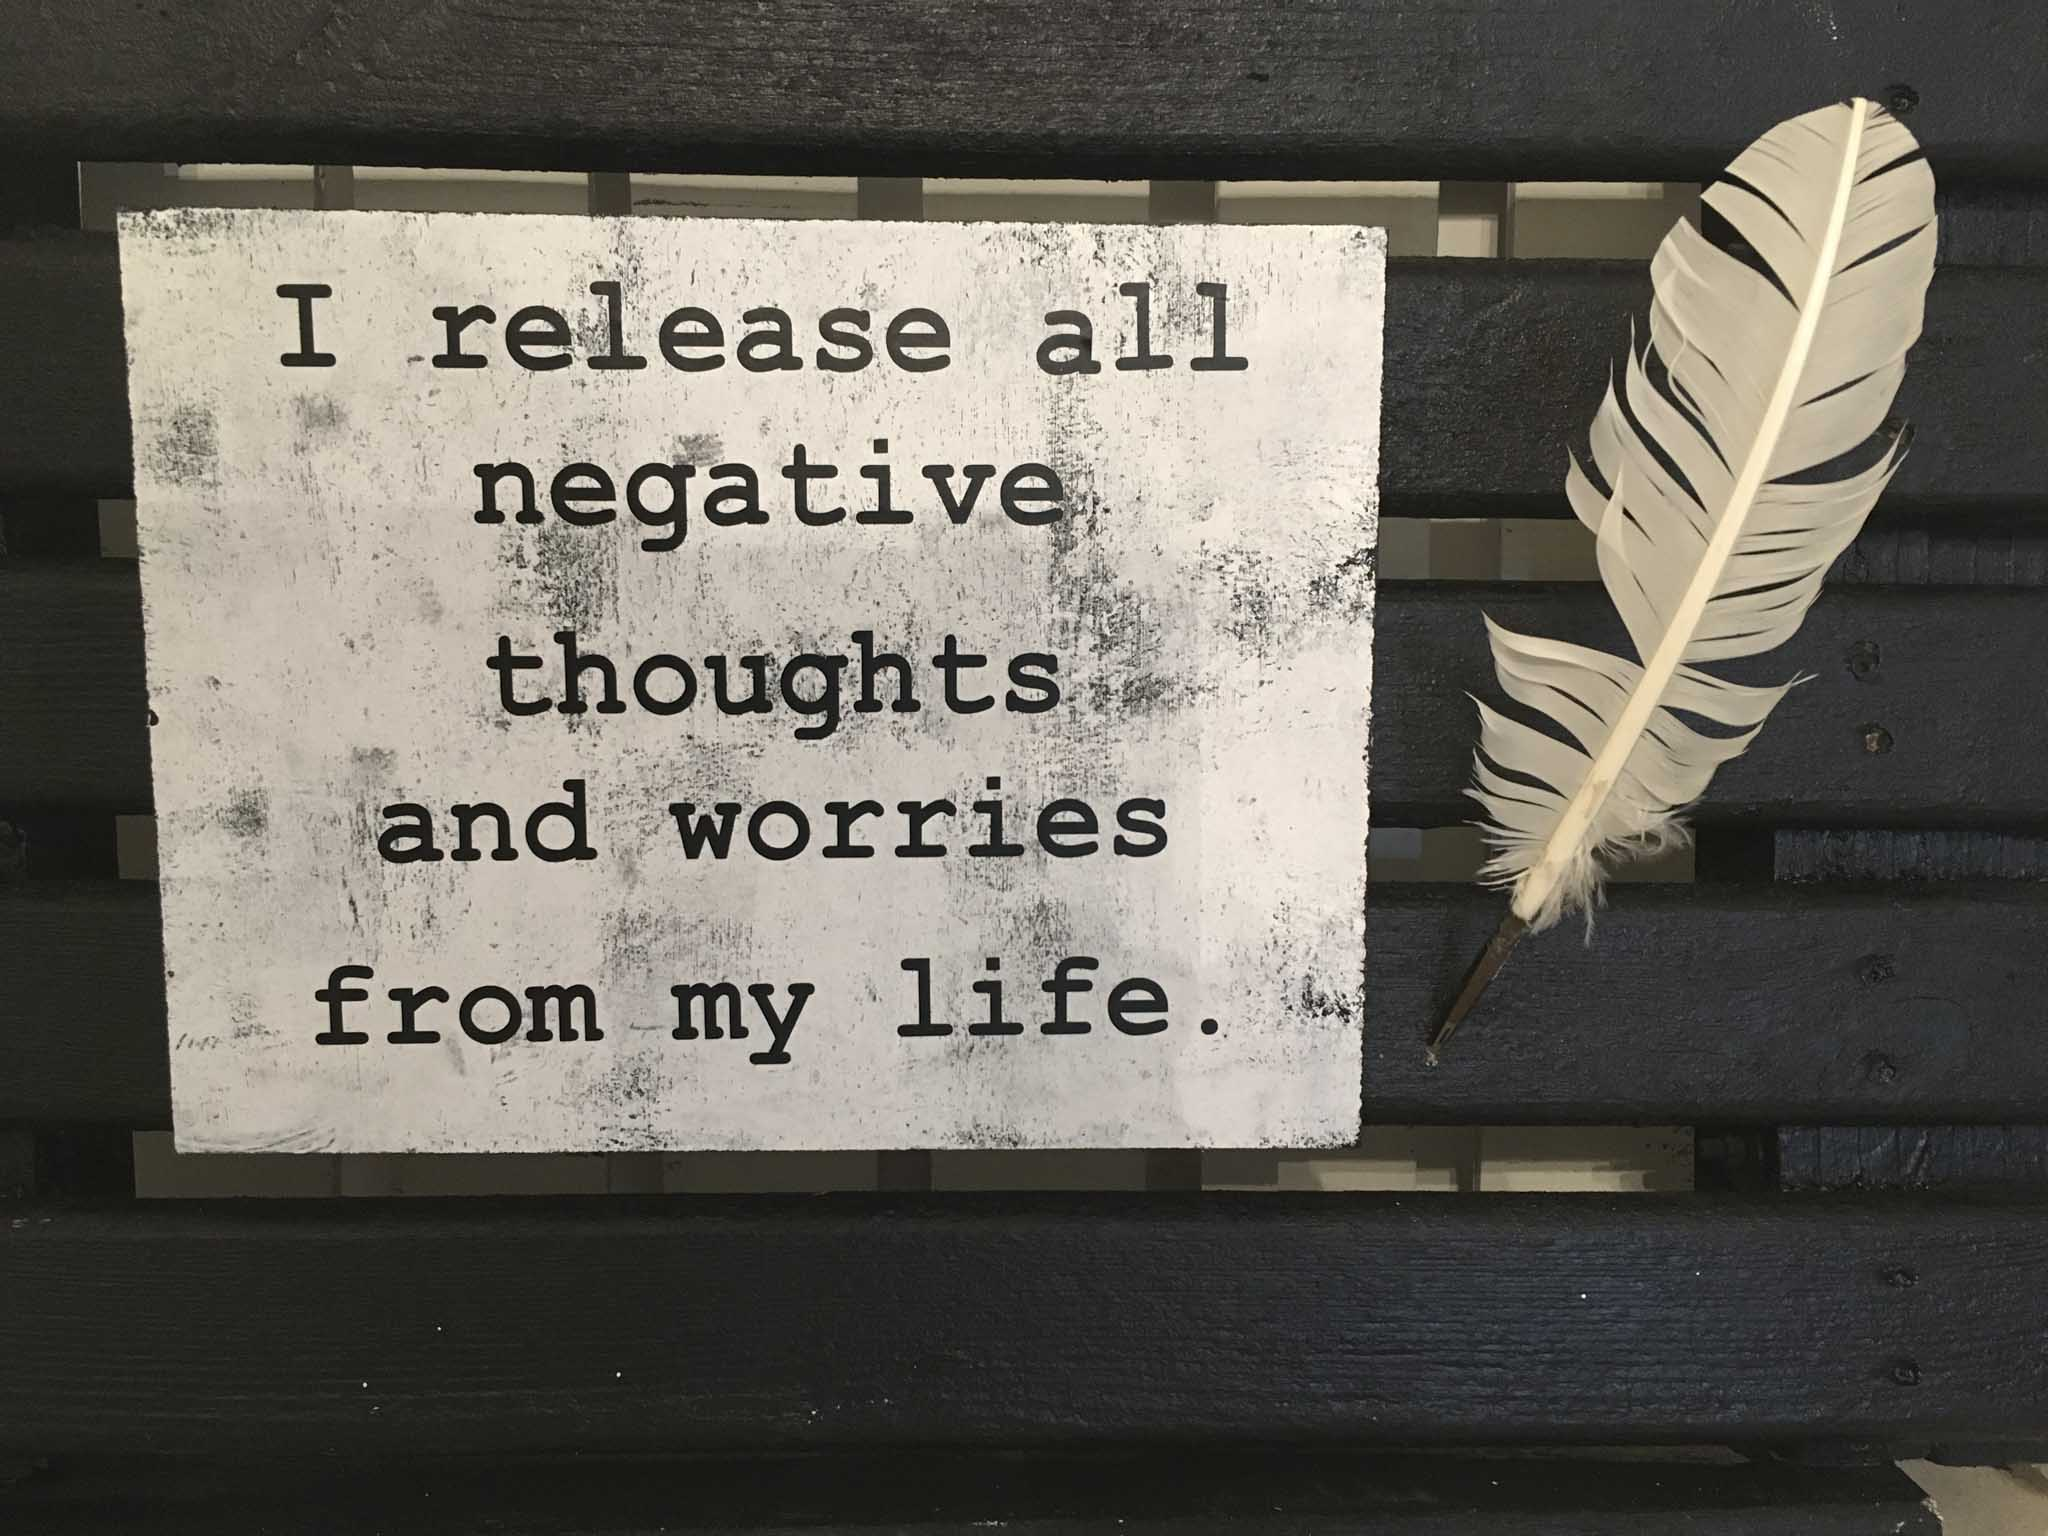 I Release All Negative Thoughts And Worries From My Life